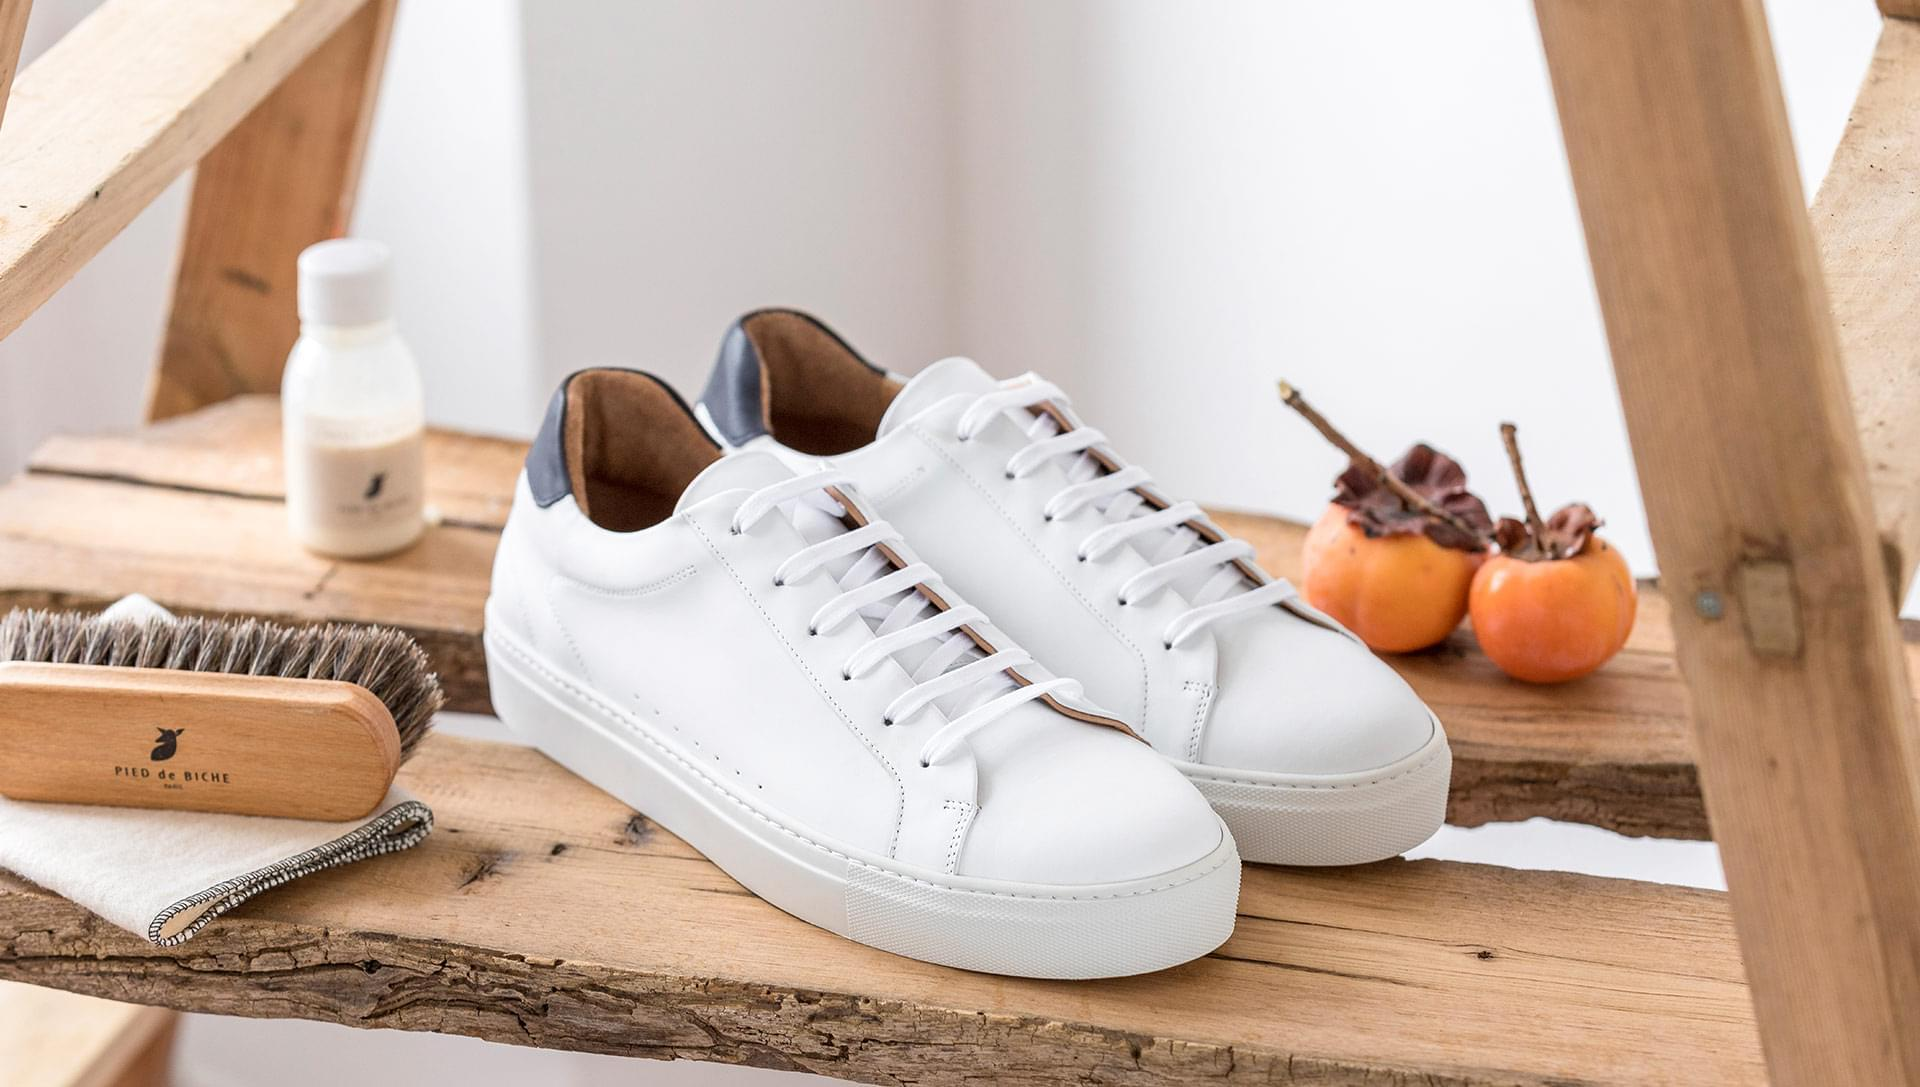 Sneakers - White and blue